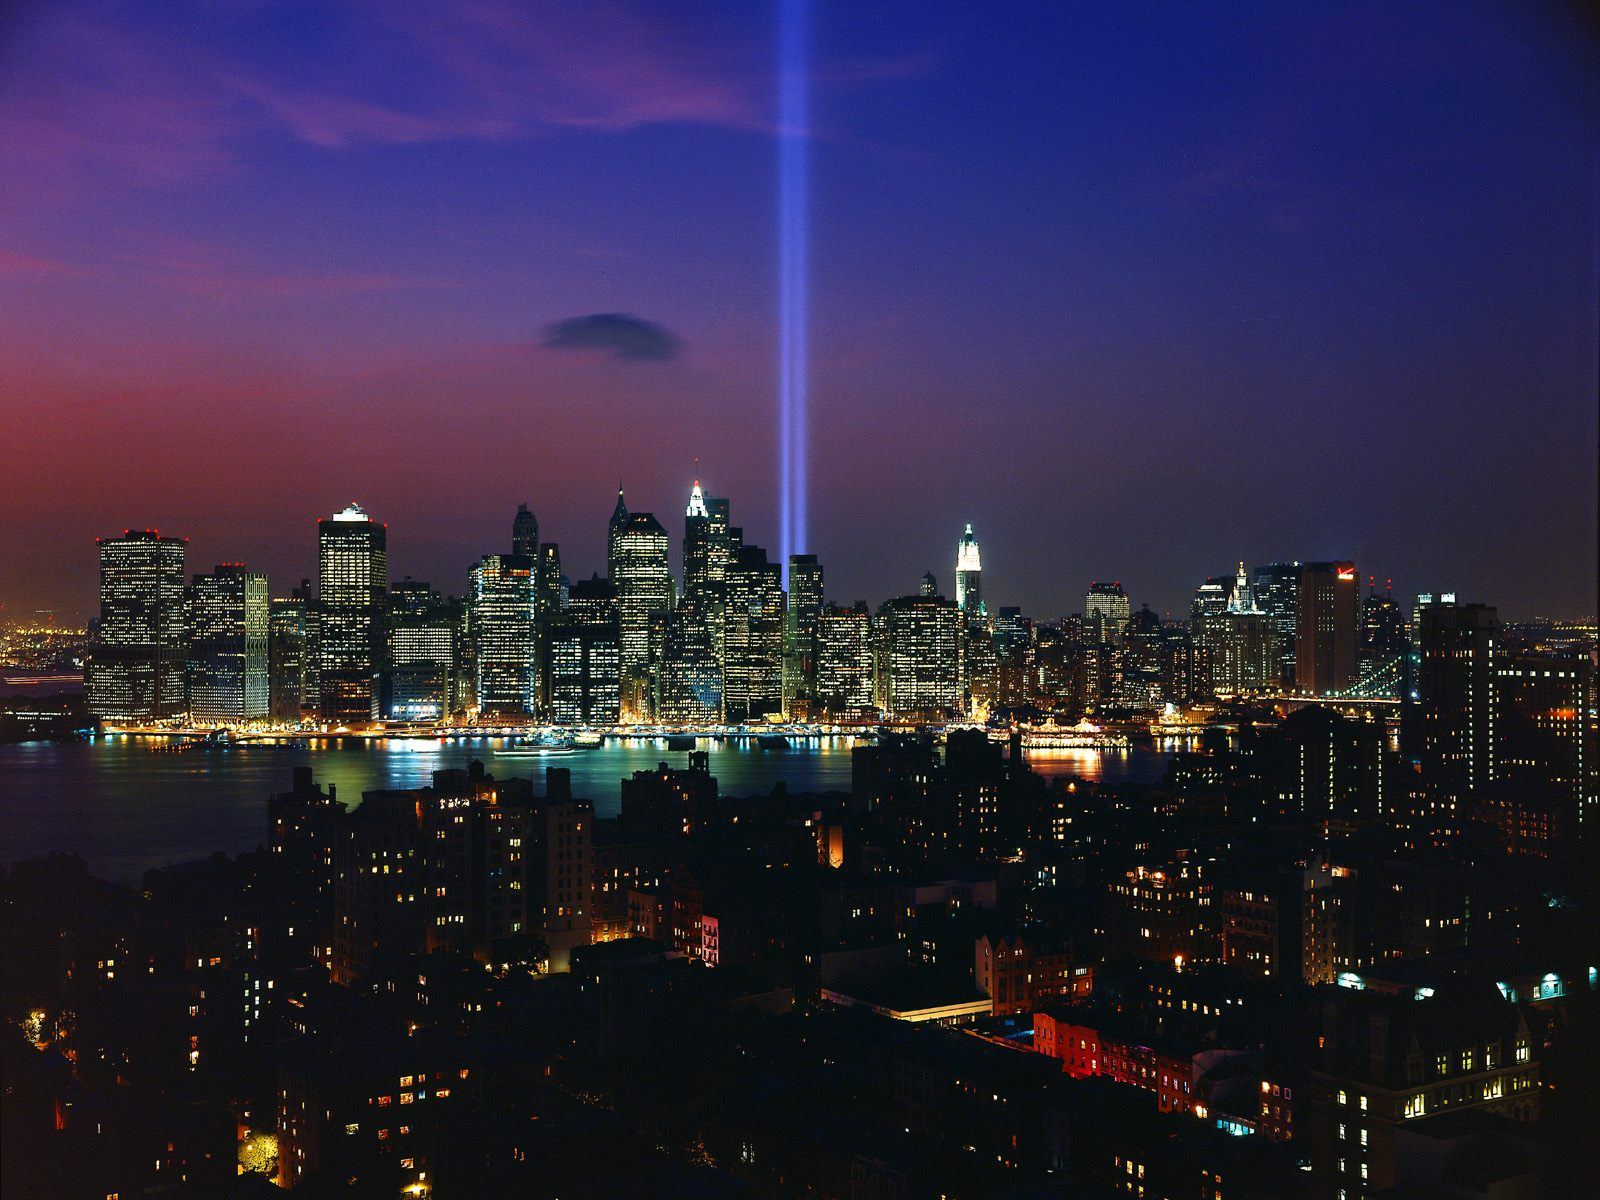 September 11th tribute 911 Tribute wallpaper   ForWallpapercom 1600x1200